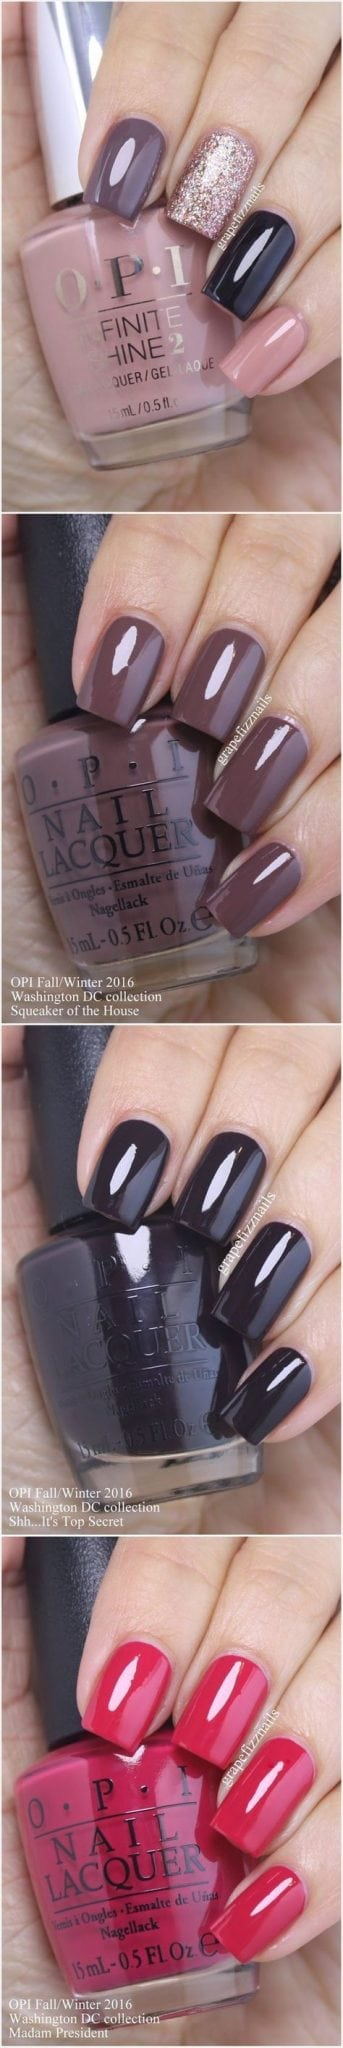 10 Easy Nail Designs You Can Do At Home Source by herebi   …